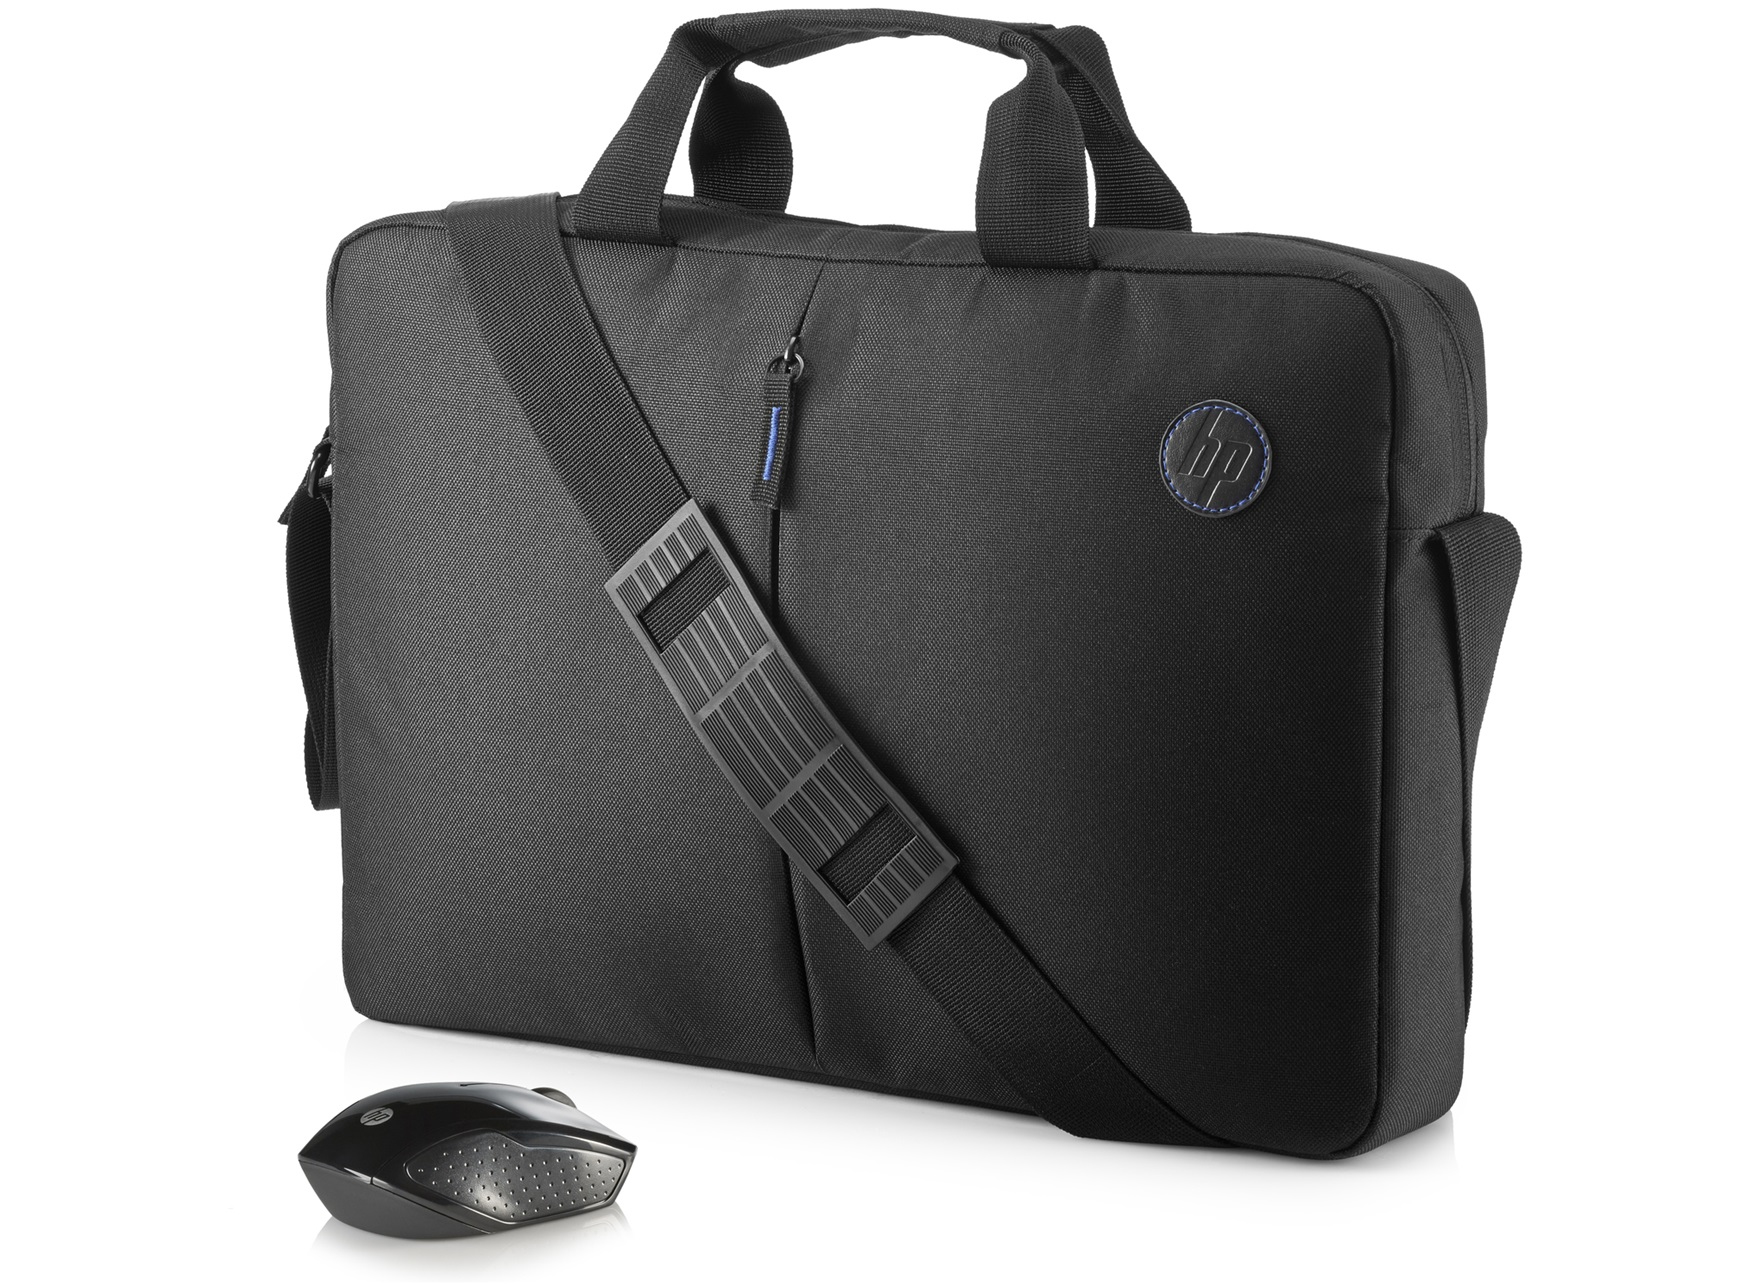 Hp Value Briefcase And Wireless Mouse Kit Laptop 14 Bw002ax